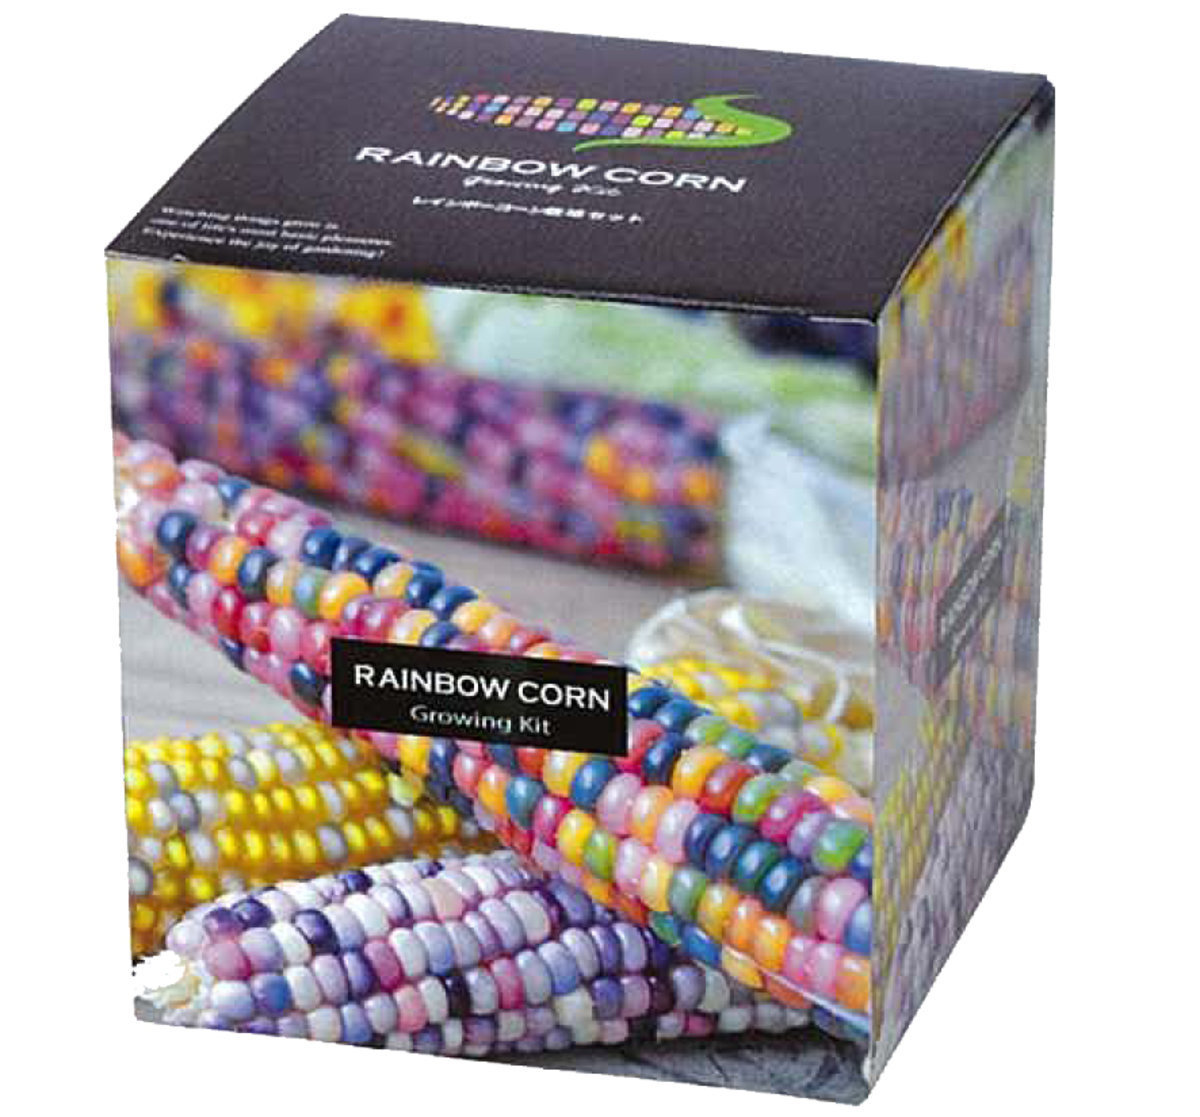 GD-6555 Rainbow Corn